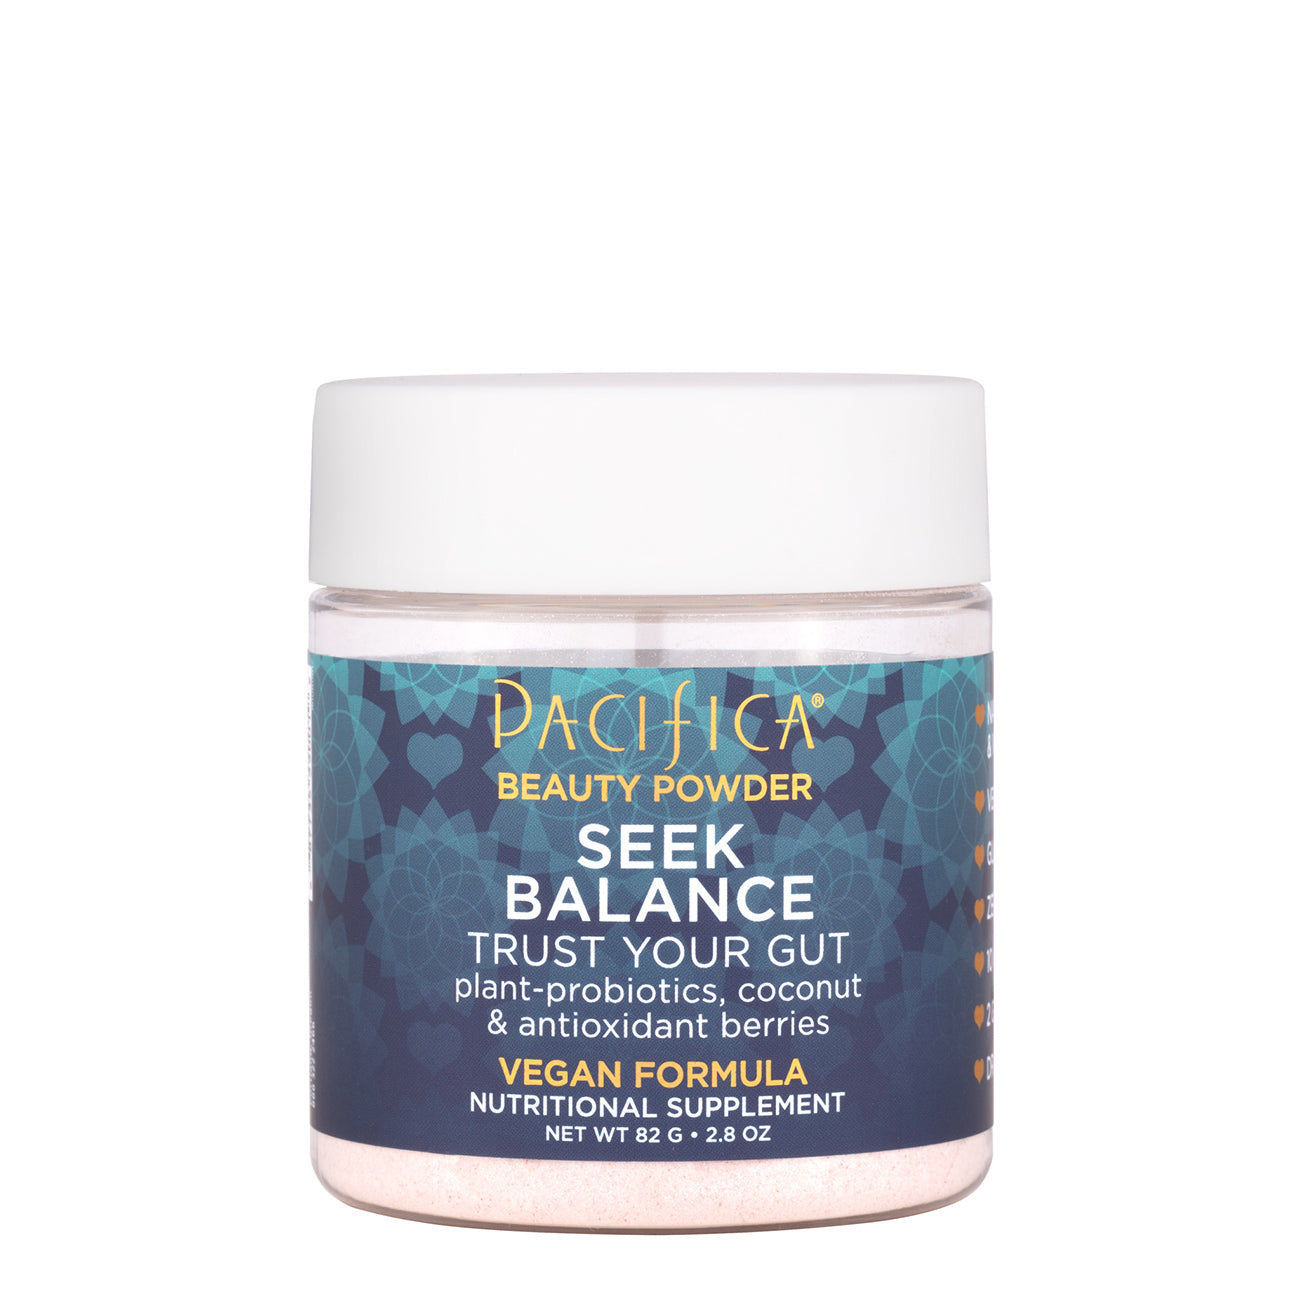 Seek Balance Beauty Powder Nutritional Supplement - Skin Care - Pacifica Beauty